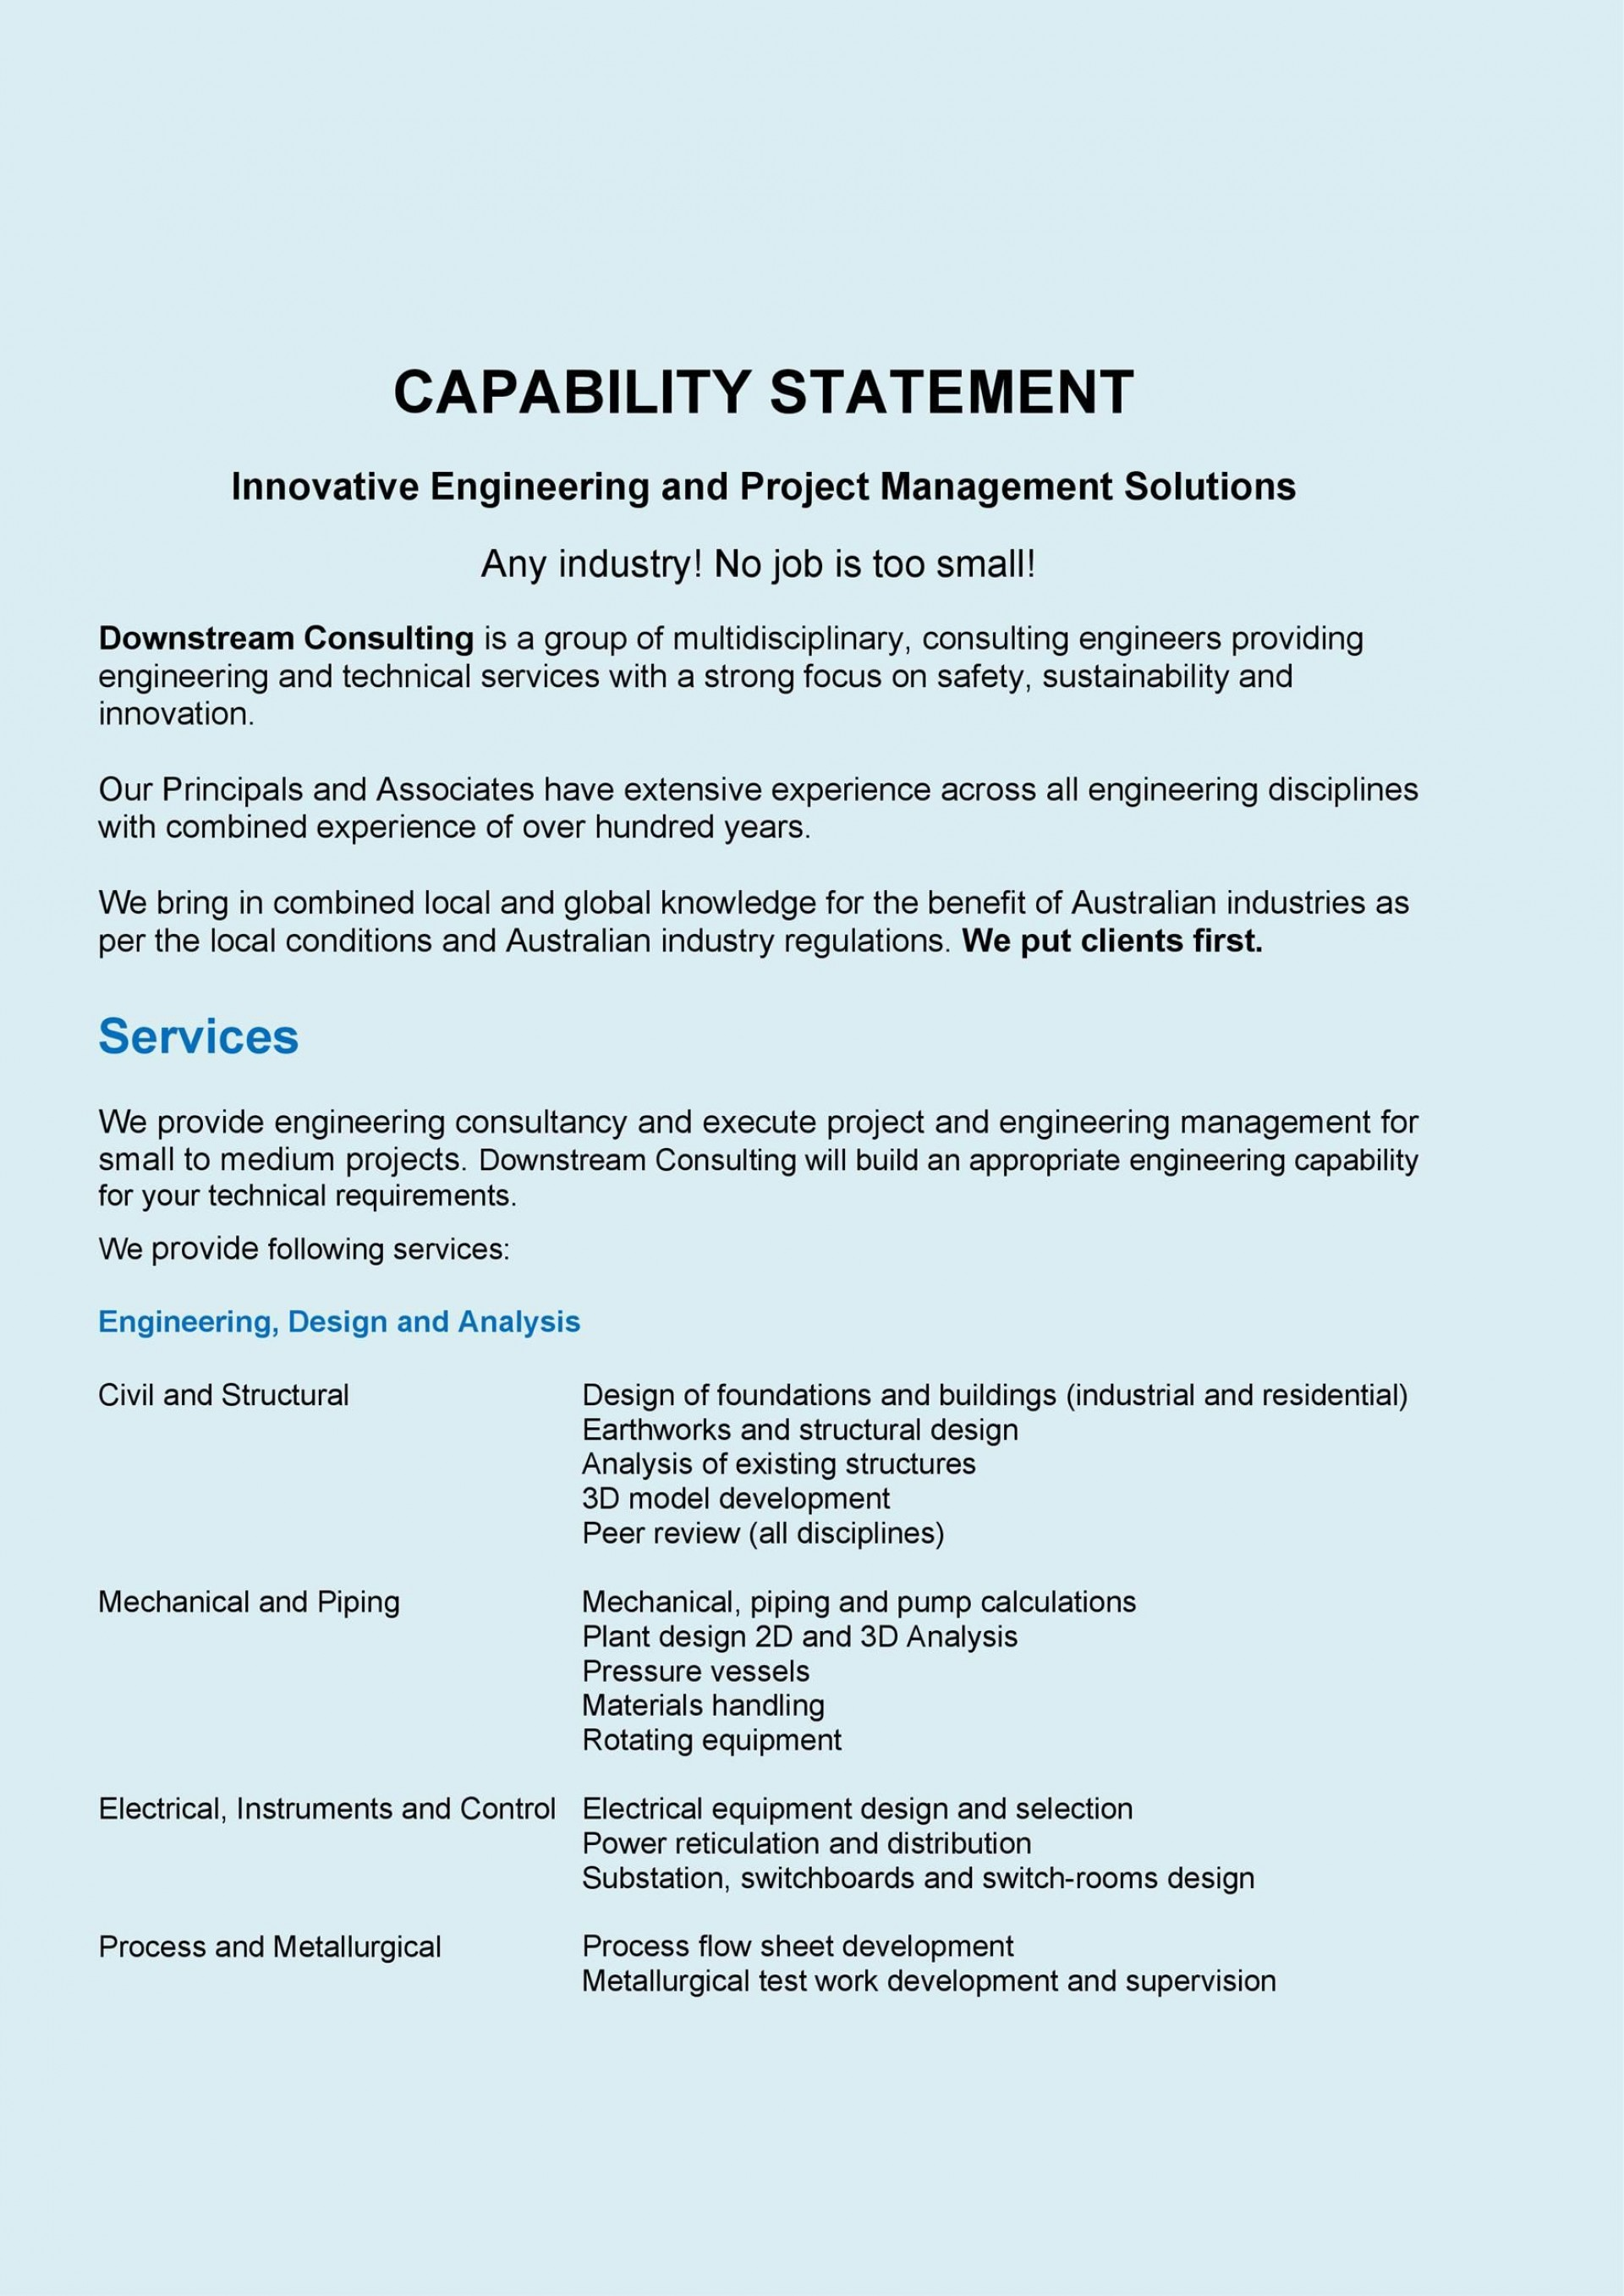 005 Phenomenal Free Capability Statement Template Word Design  Document1920